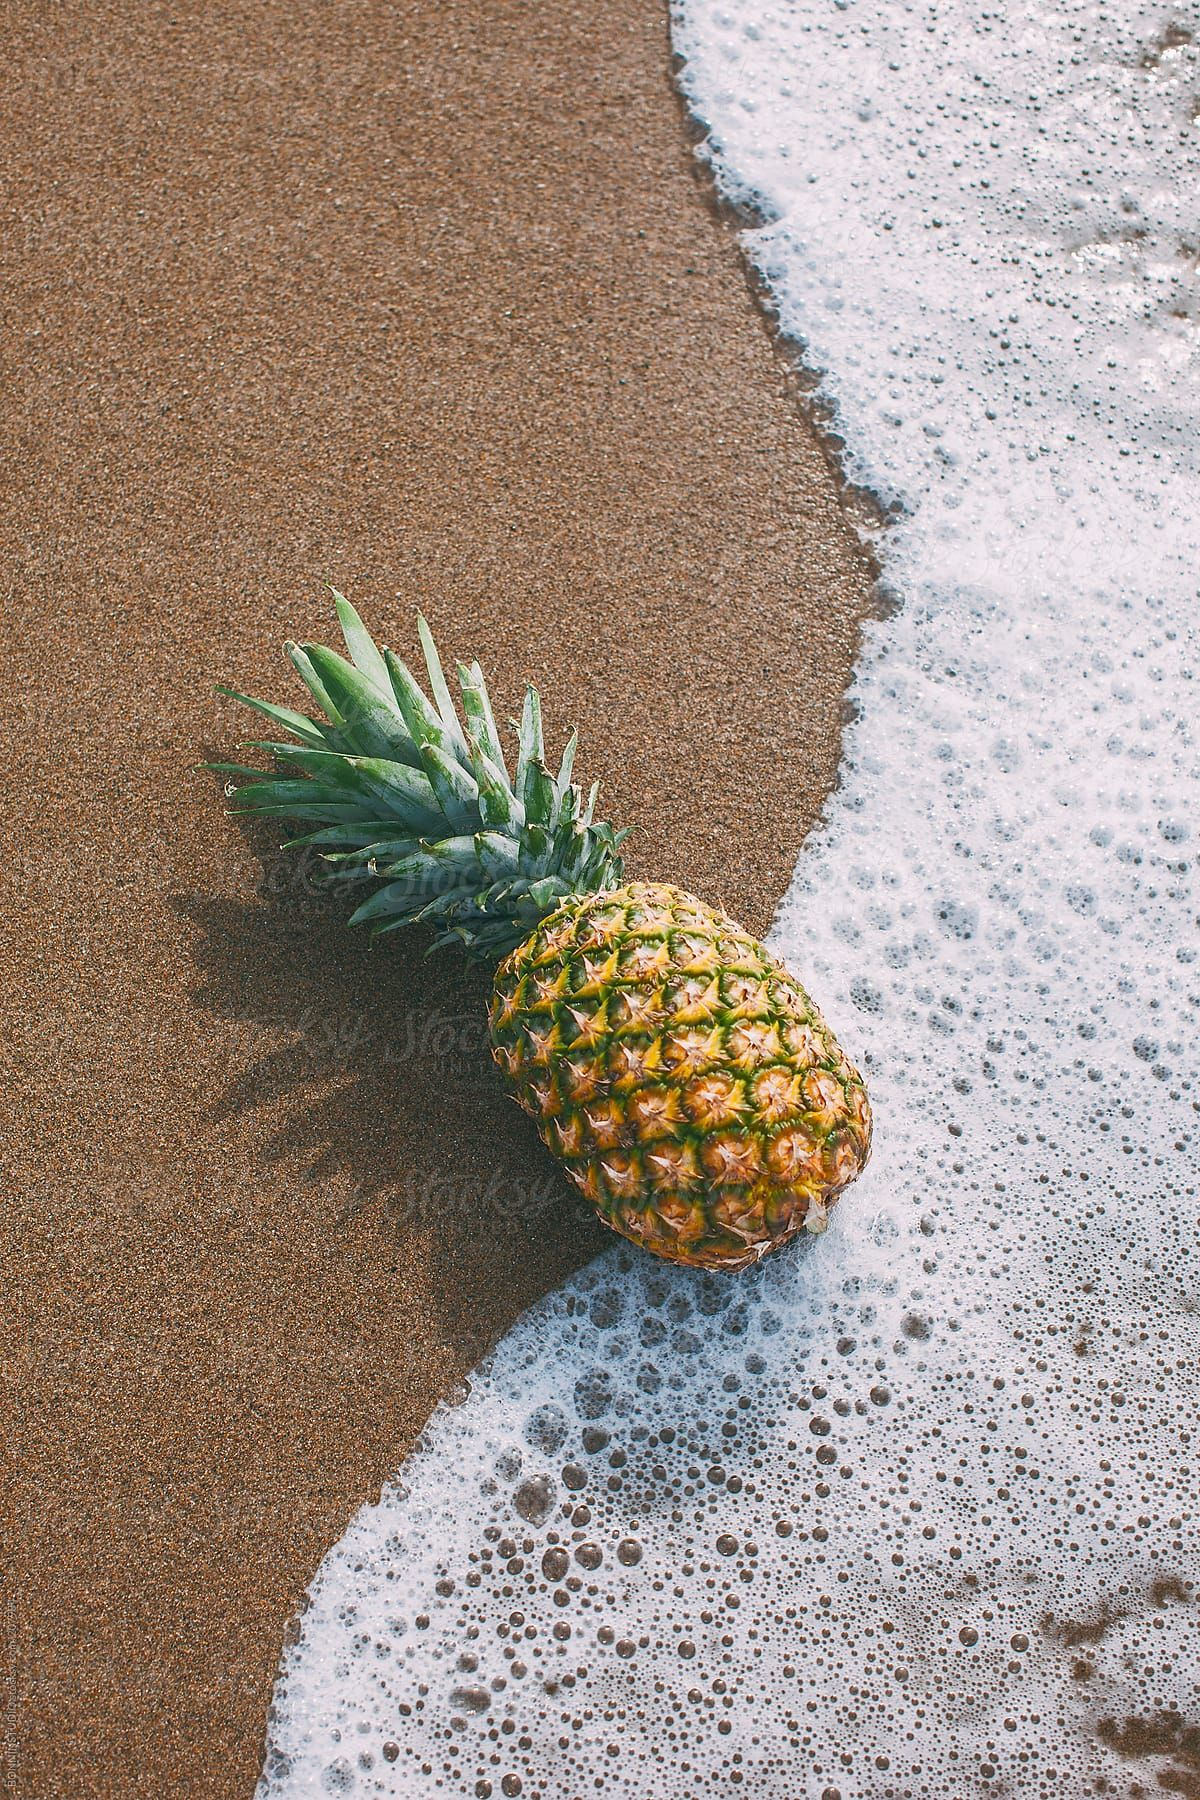 Pineapple On The Beach. Summer Time. Download this high